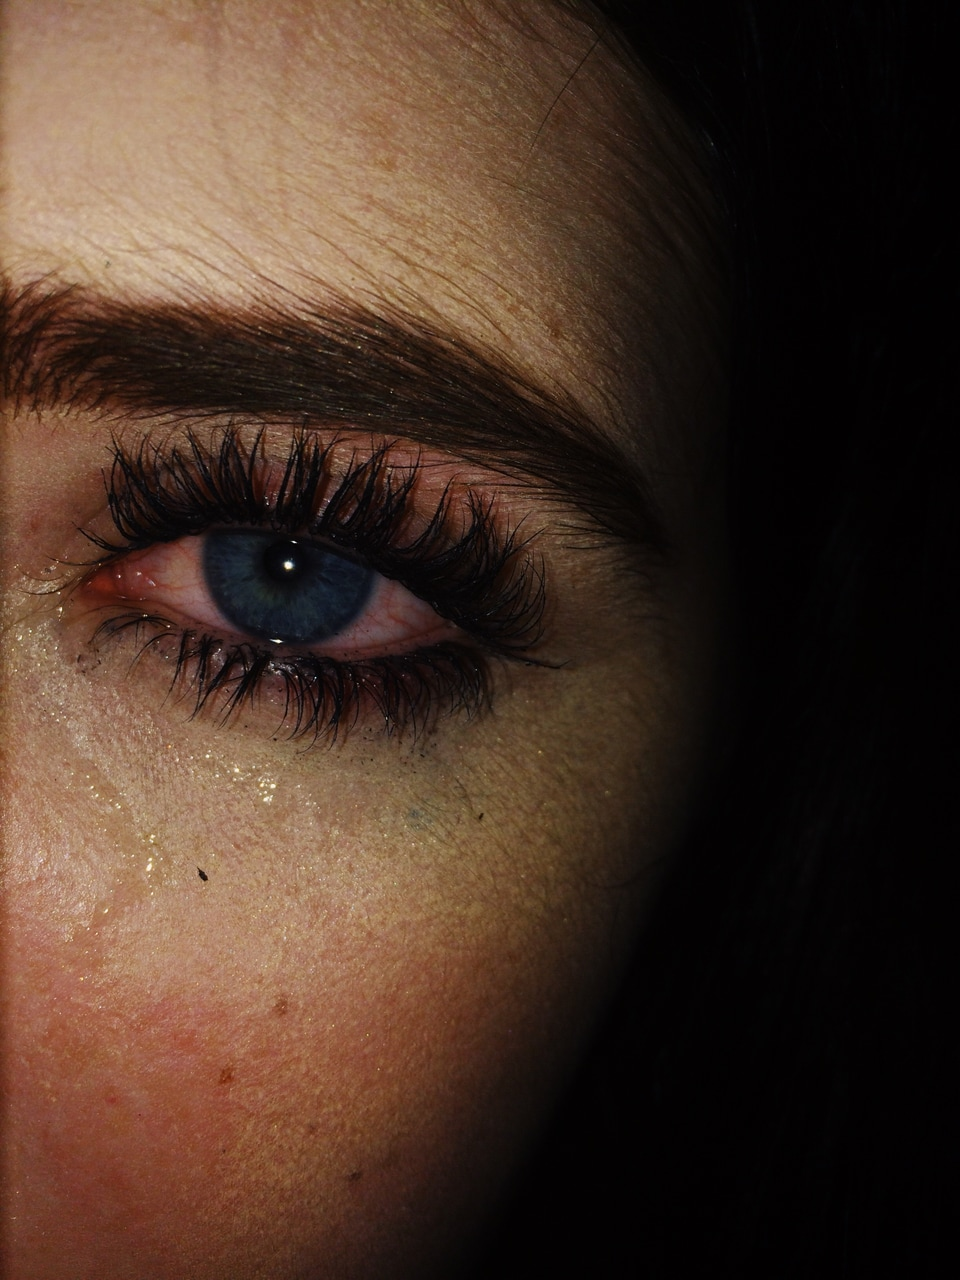 blue eyes, darkness, peace and painfull